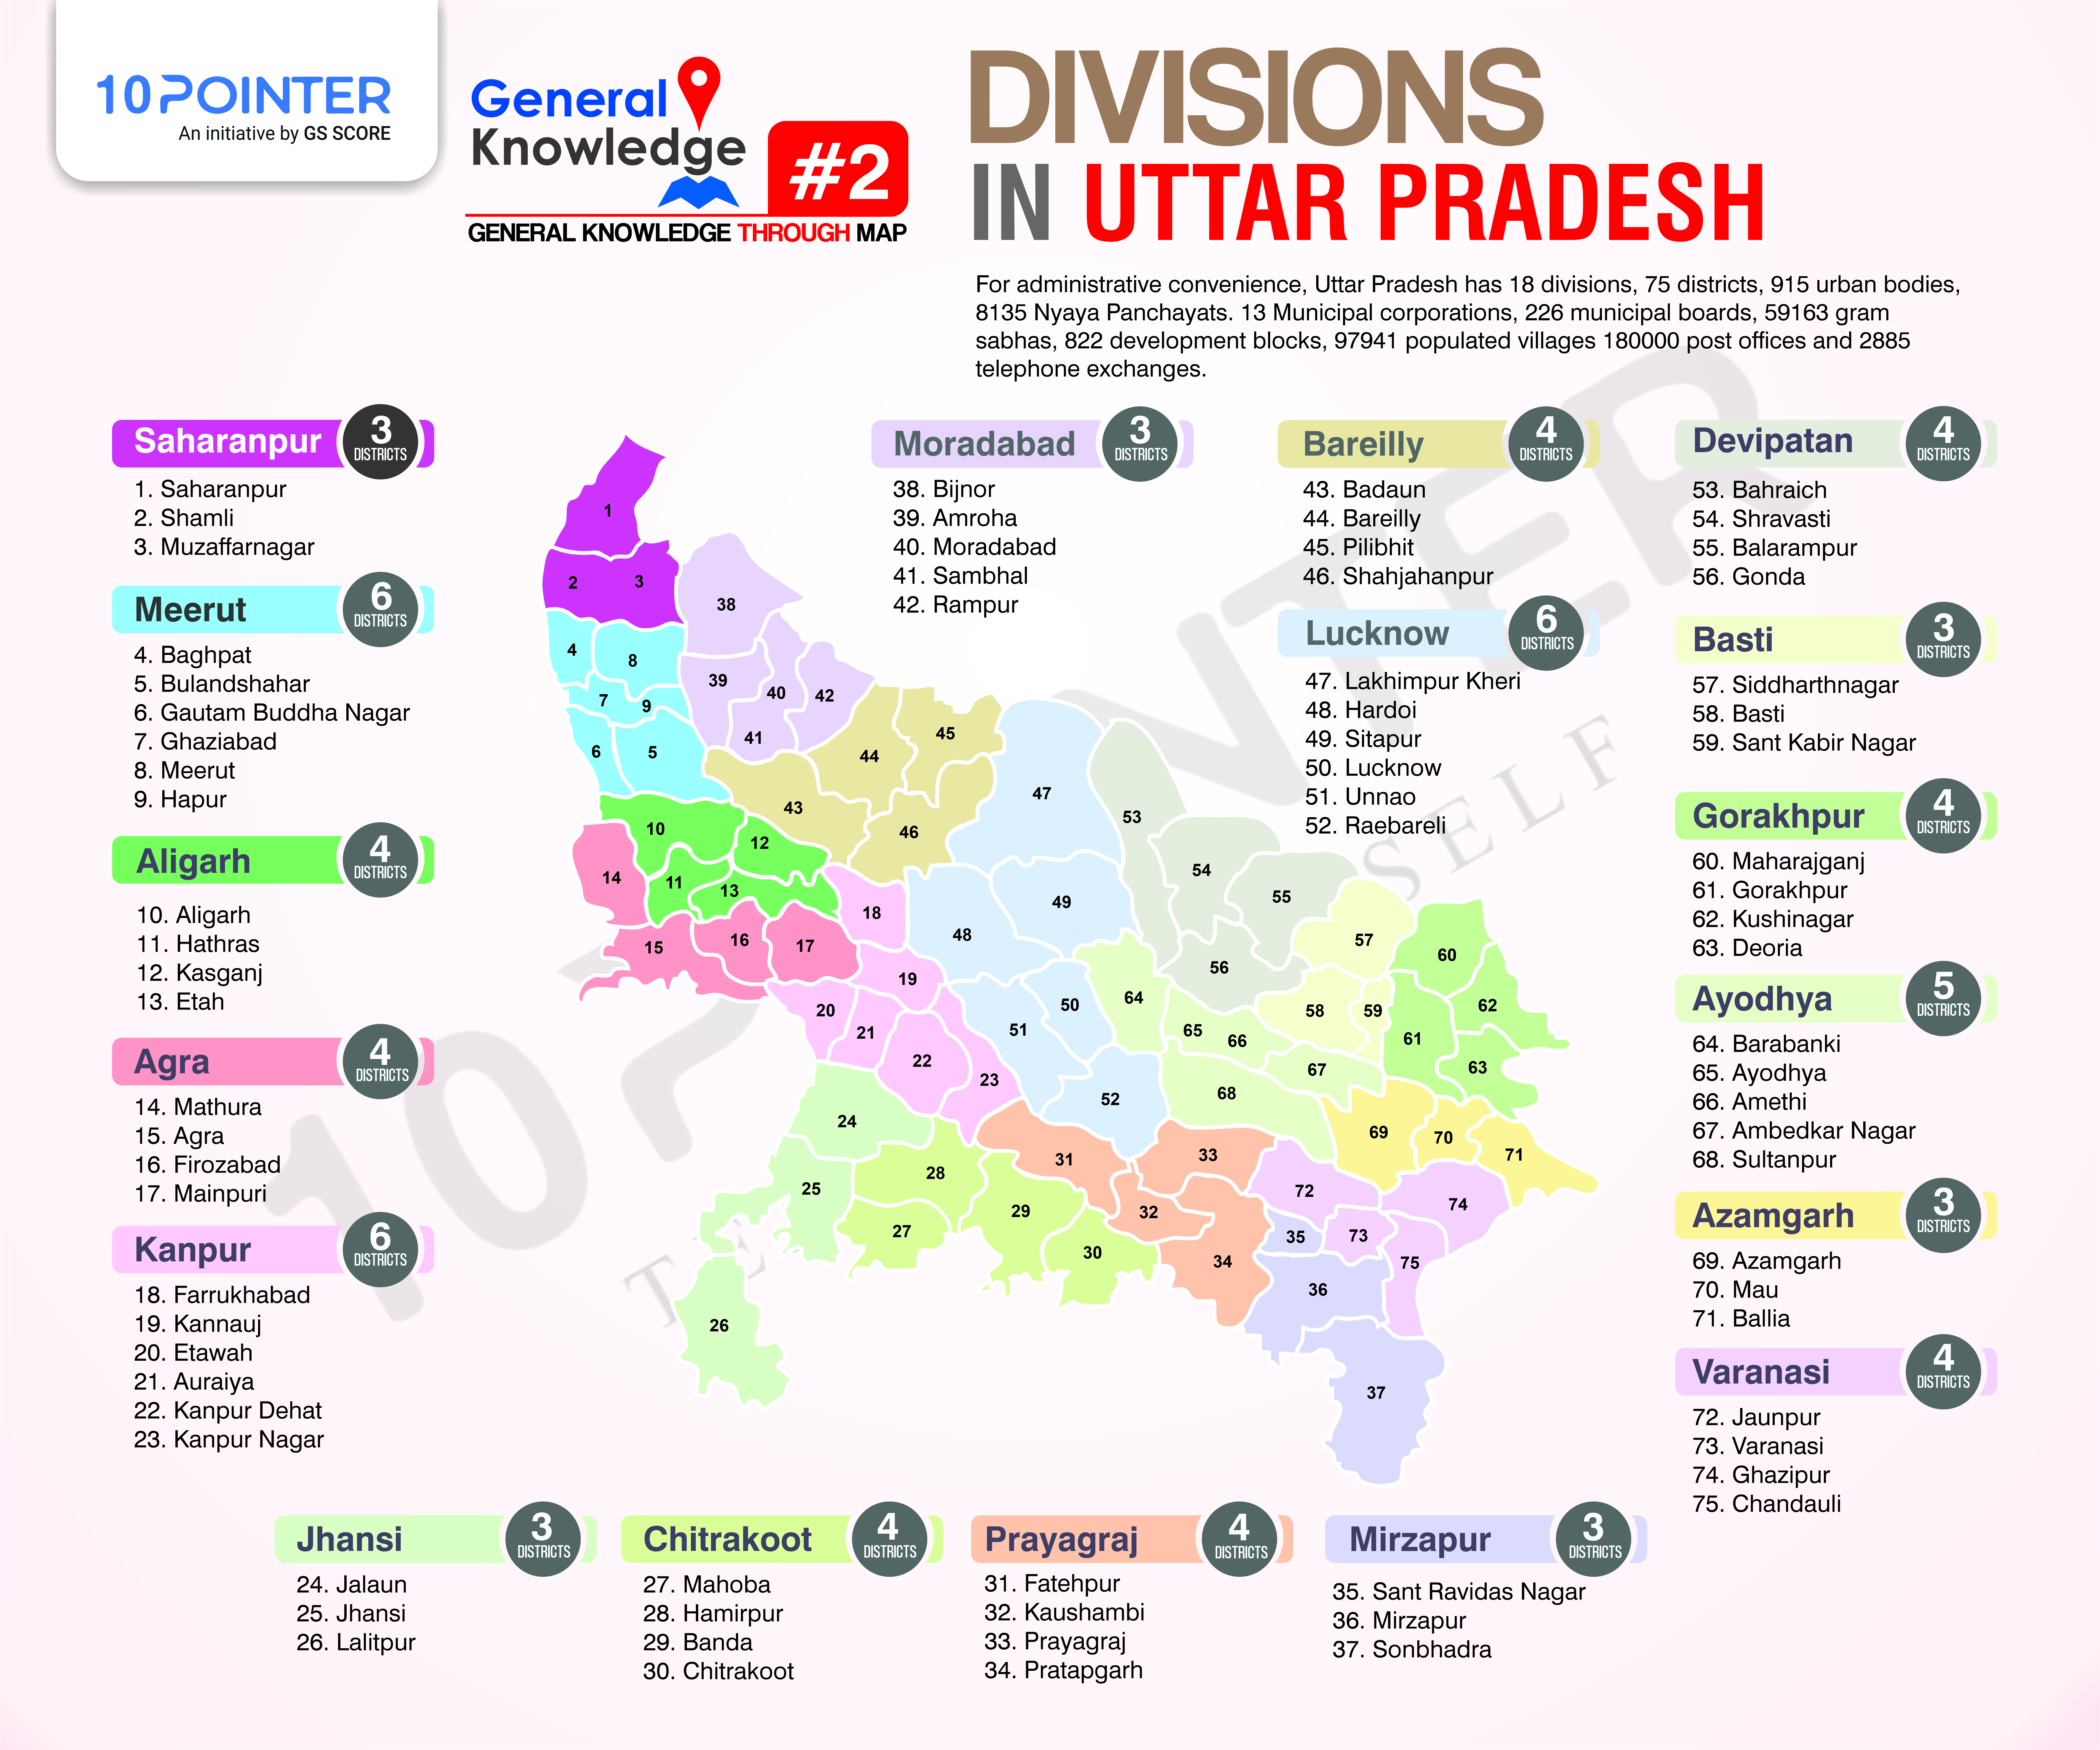 DIVISION OF UP